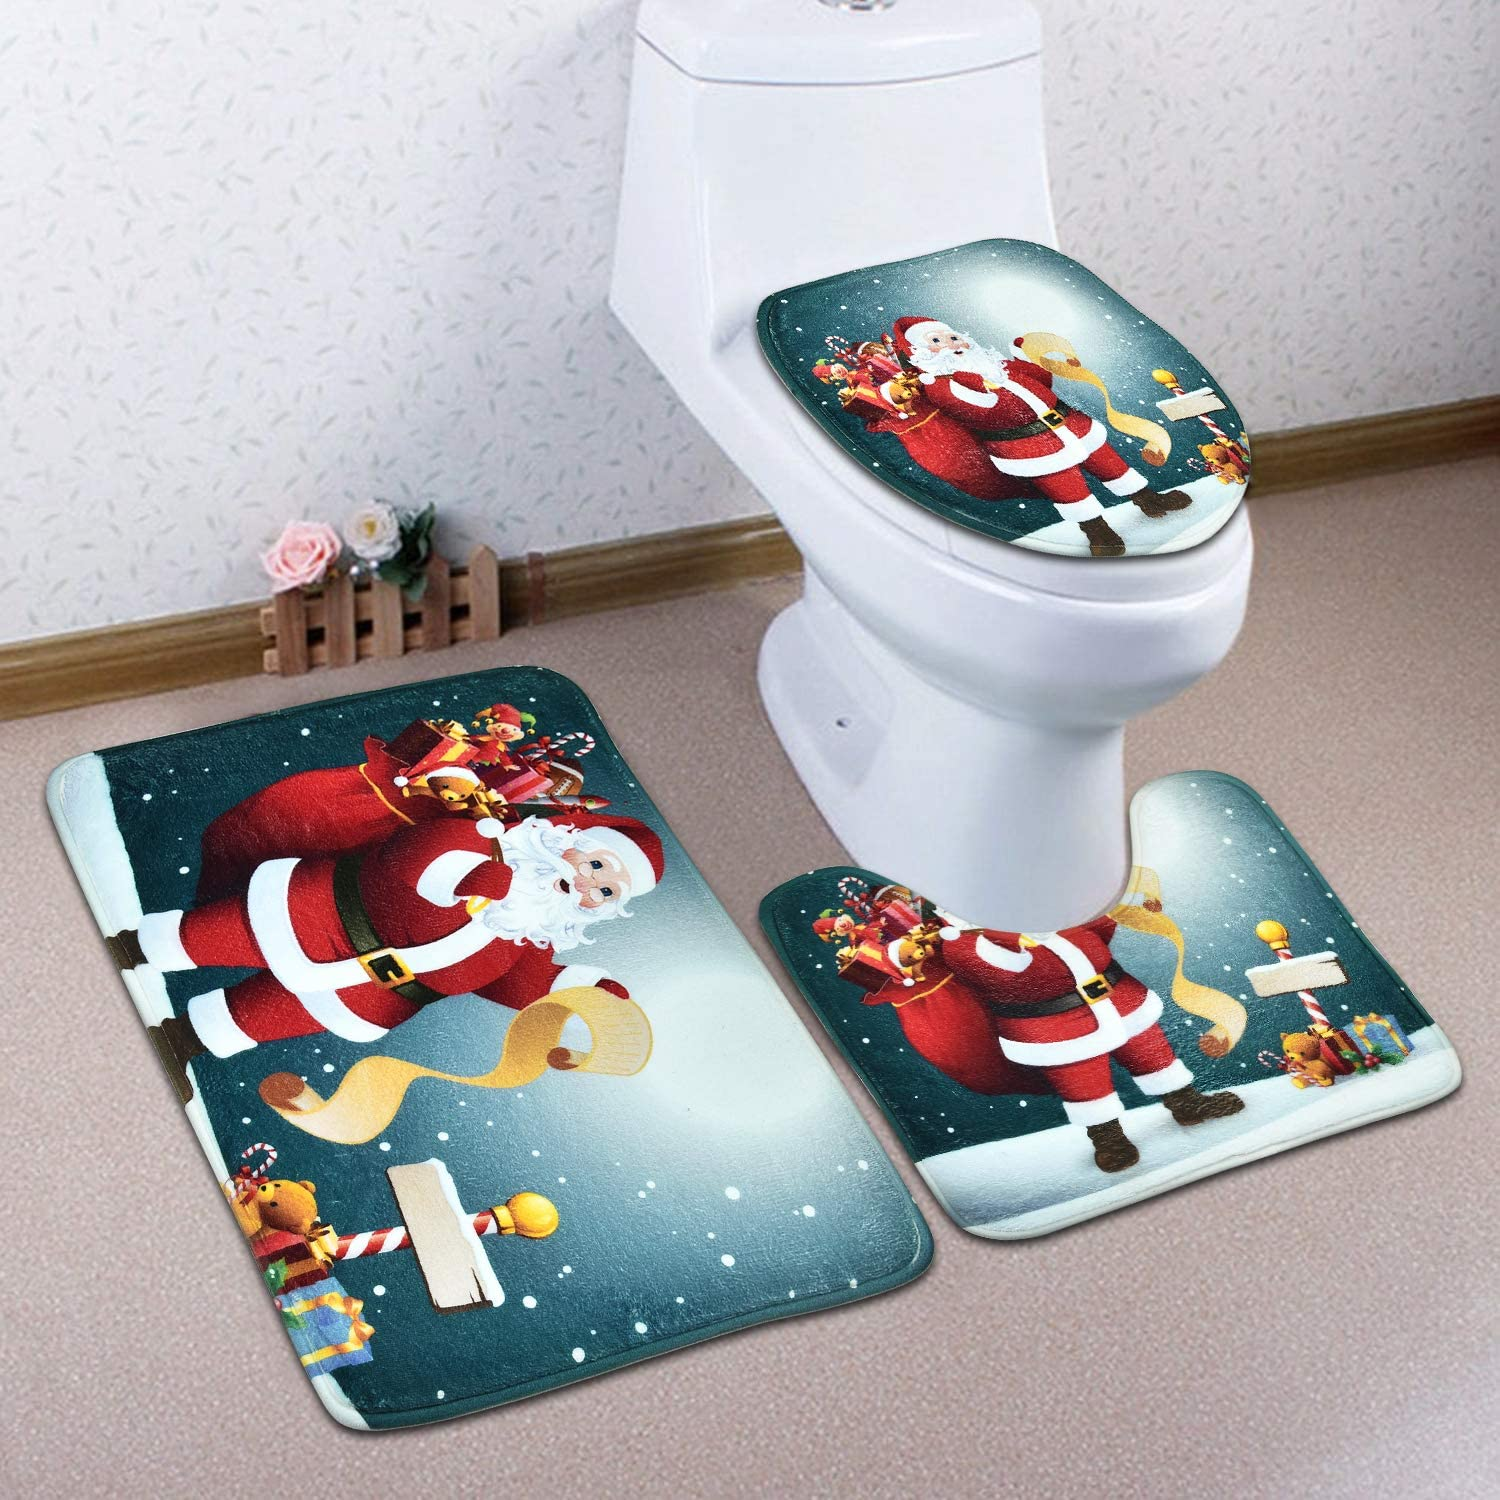 Finalshow Christmas Bathroom Accessories Sets Include Waterproof Shower Curtain//Bathroom Rug//Lid Toilet Cover//Bath Mat Santa Xms Gifts 4 Pcs Old Man